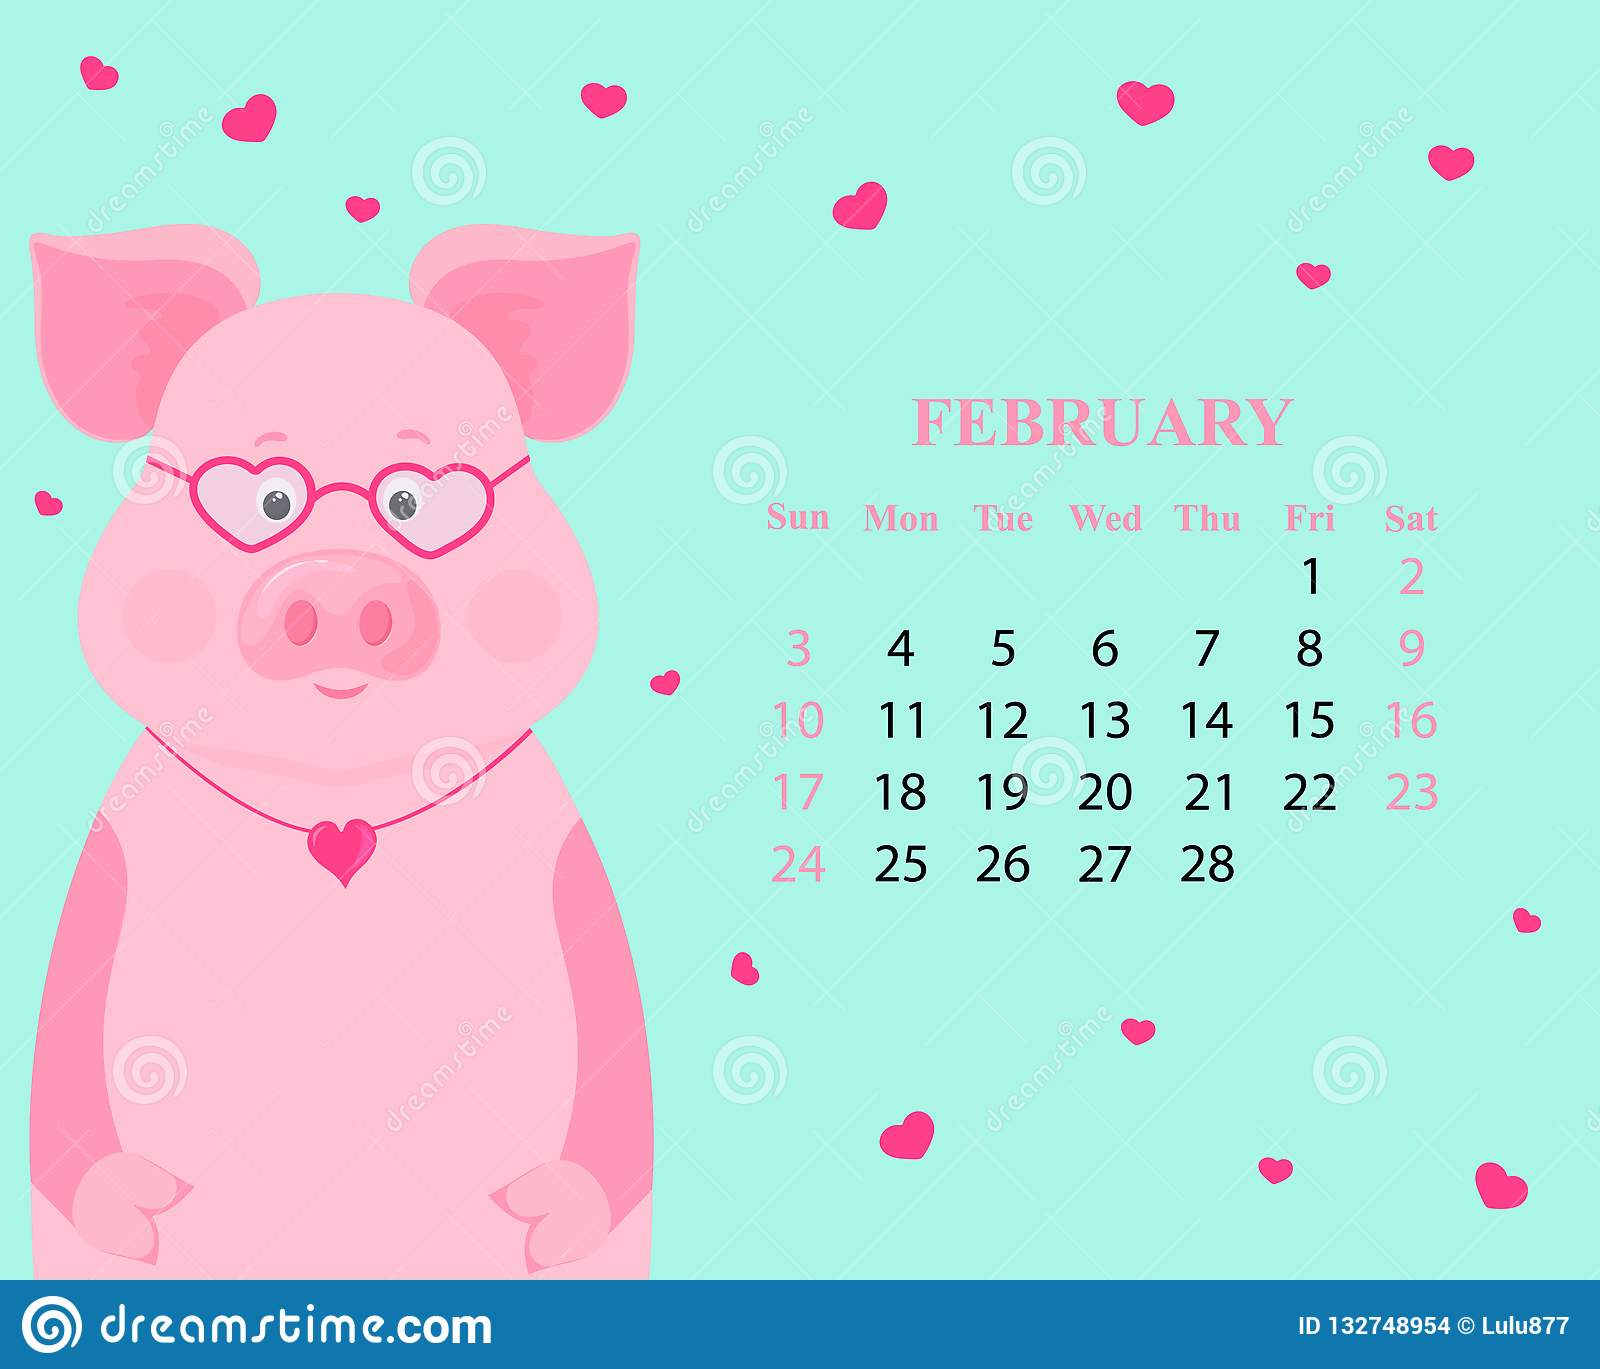 Chinese Calendar February 2019 Monthly Calendar For February 2019. Cute Pig With Glasses And